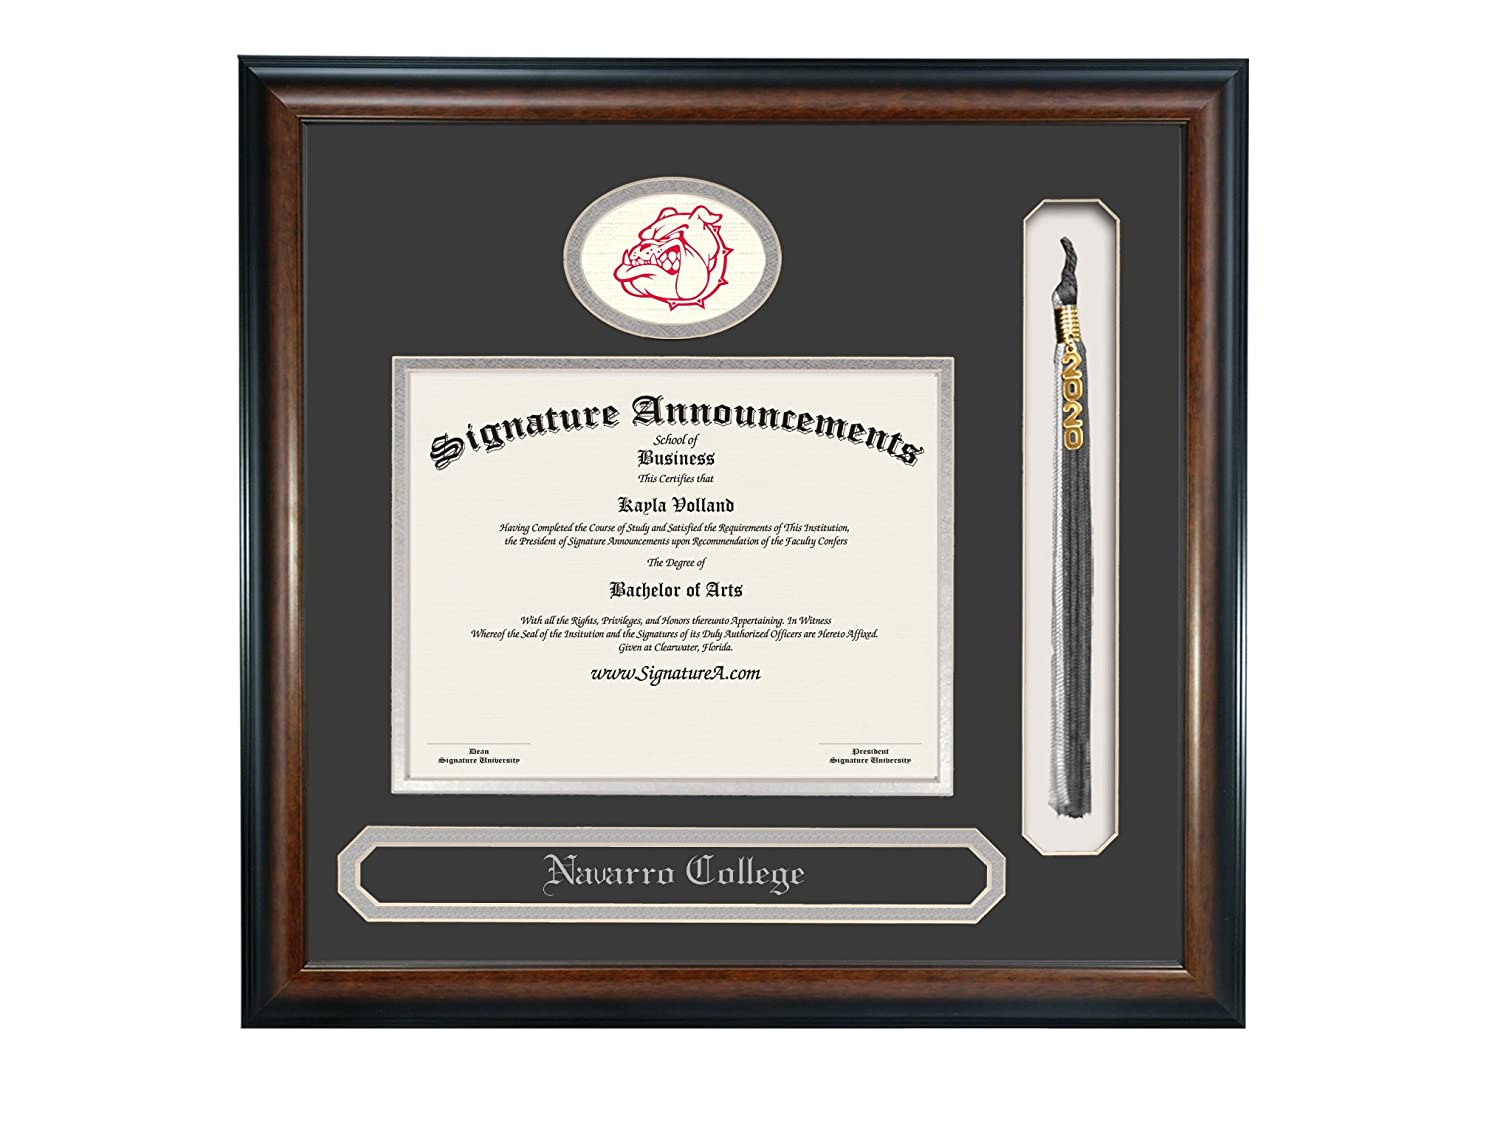 Professional//Doctor Sculpted Foil Seal Signature Announcements Navarro College Undergraduate Name /& Tassel Graduation Diploma Frame 16 x 16 Matte Mahogany